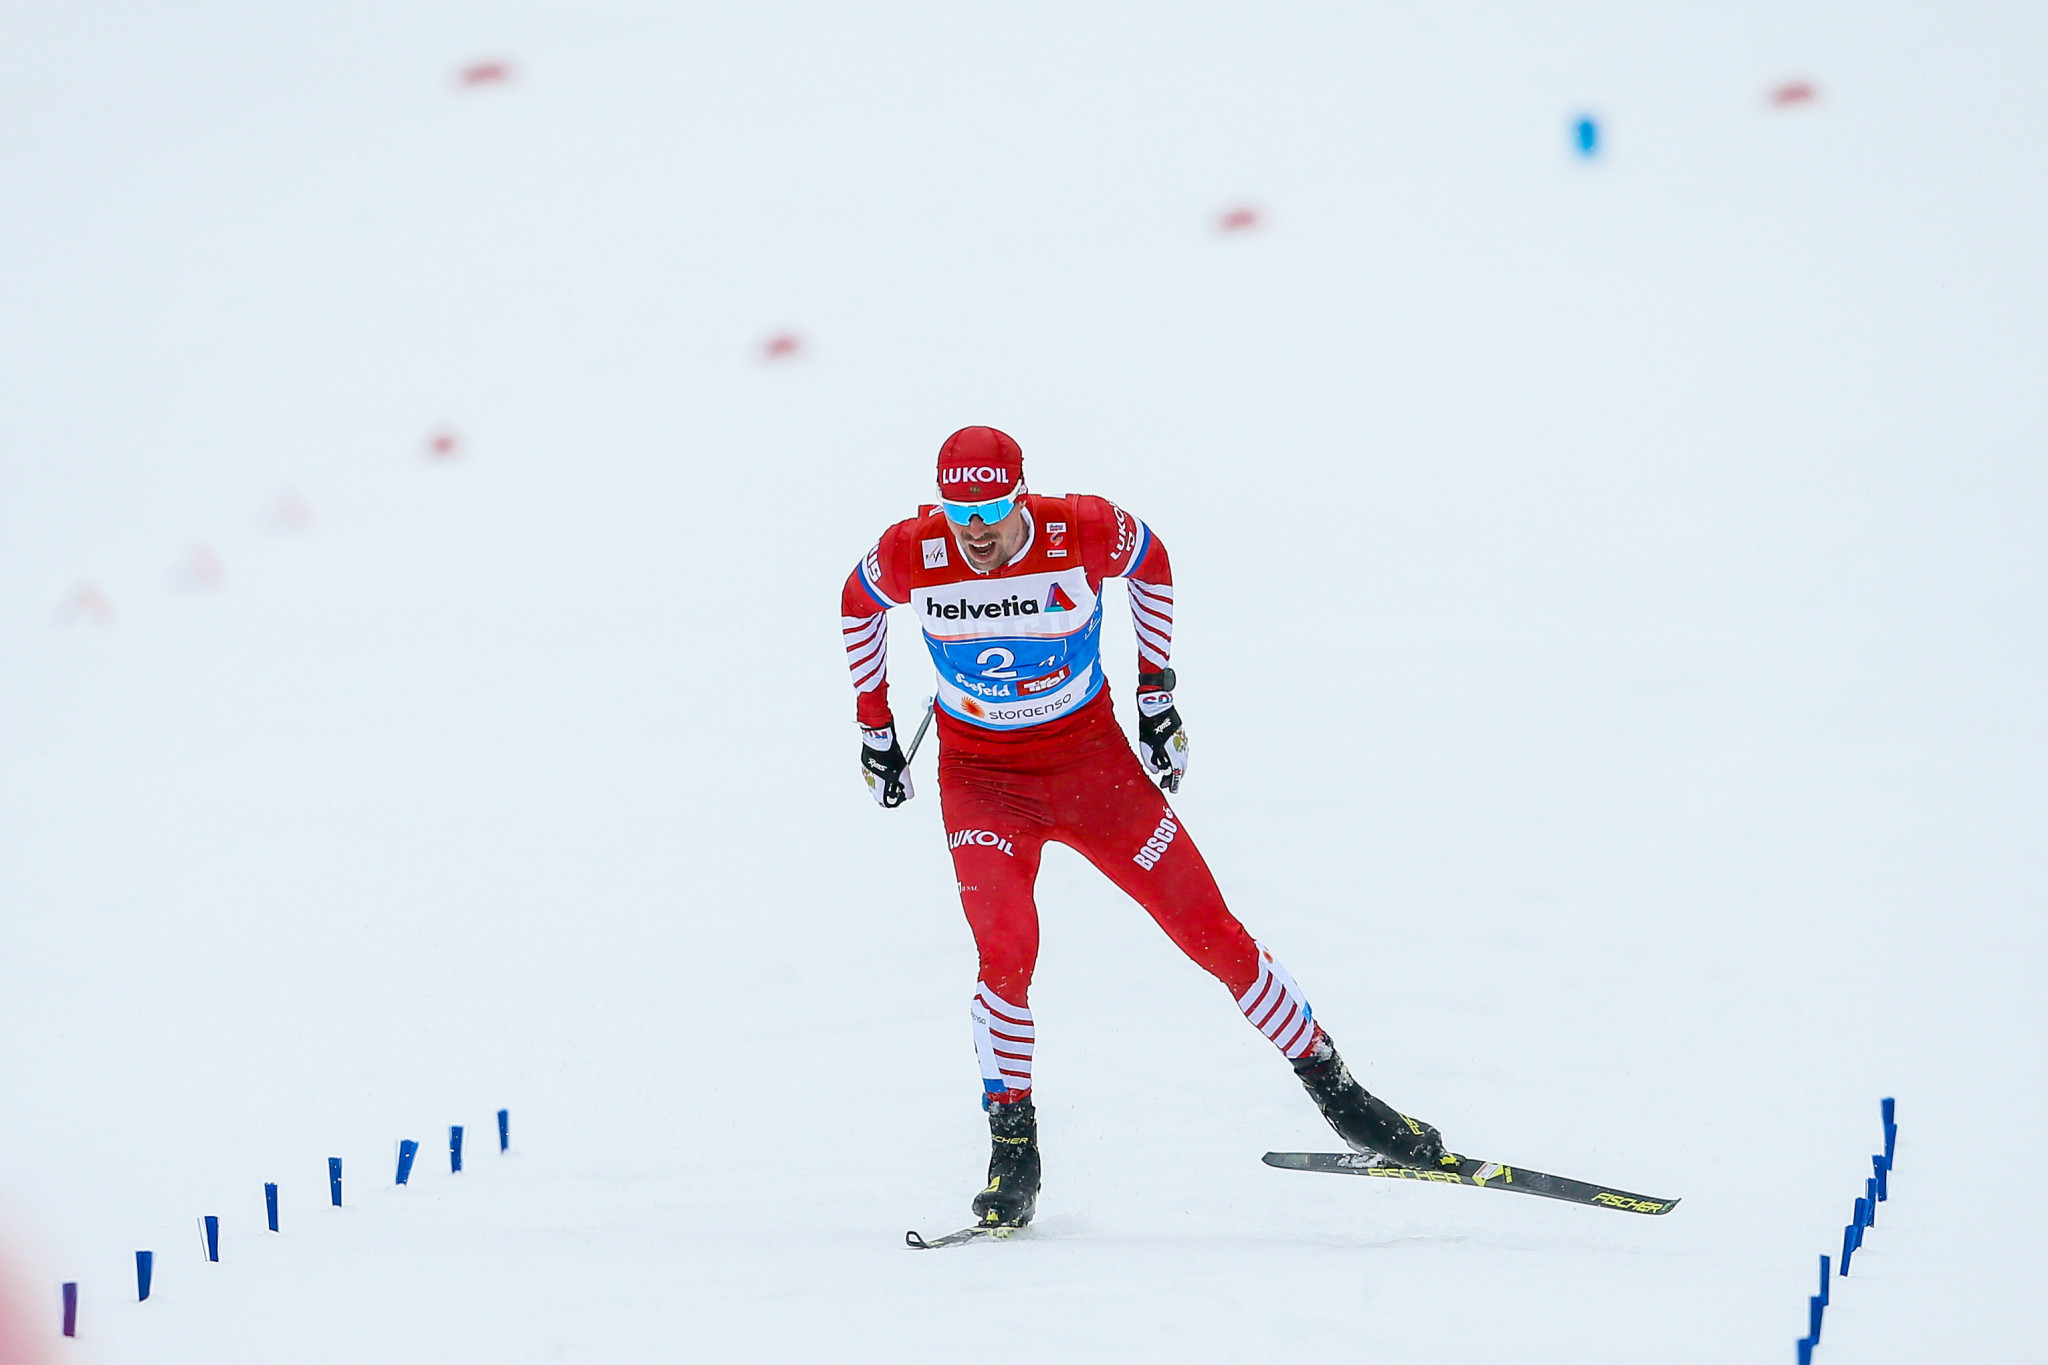 Sergey Ustiugov of Russia earned gold in the men's 15km interval start at the Tour de Ski ©Getty Images